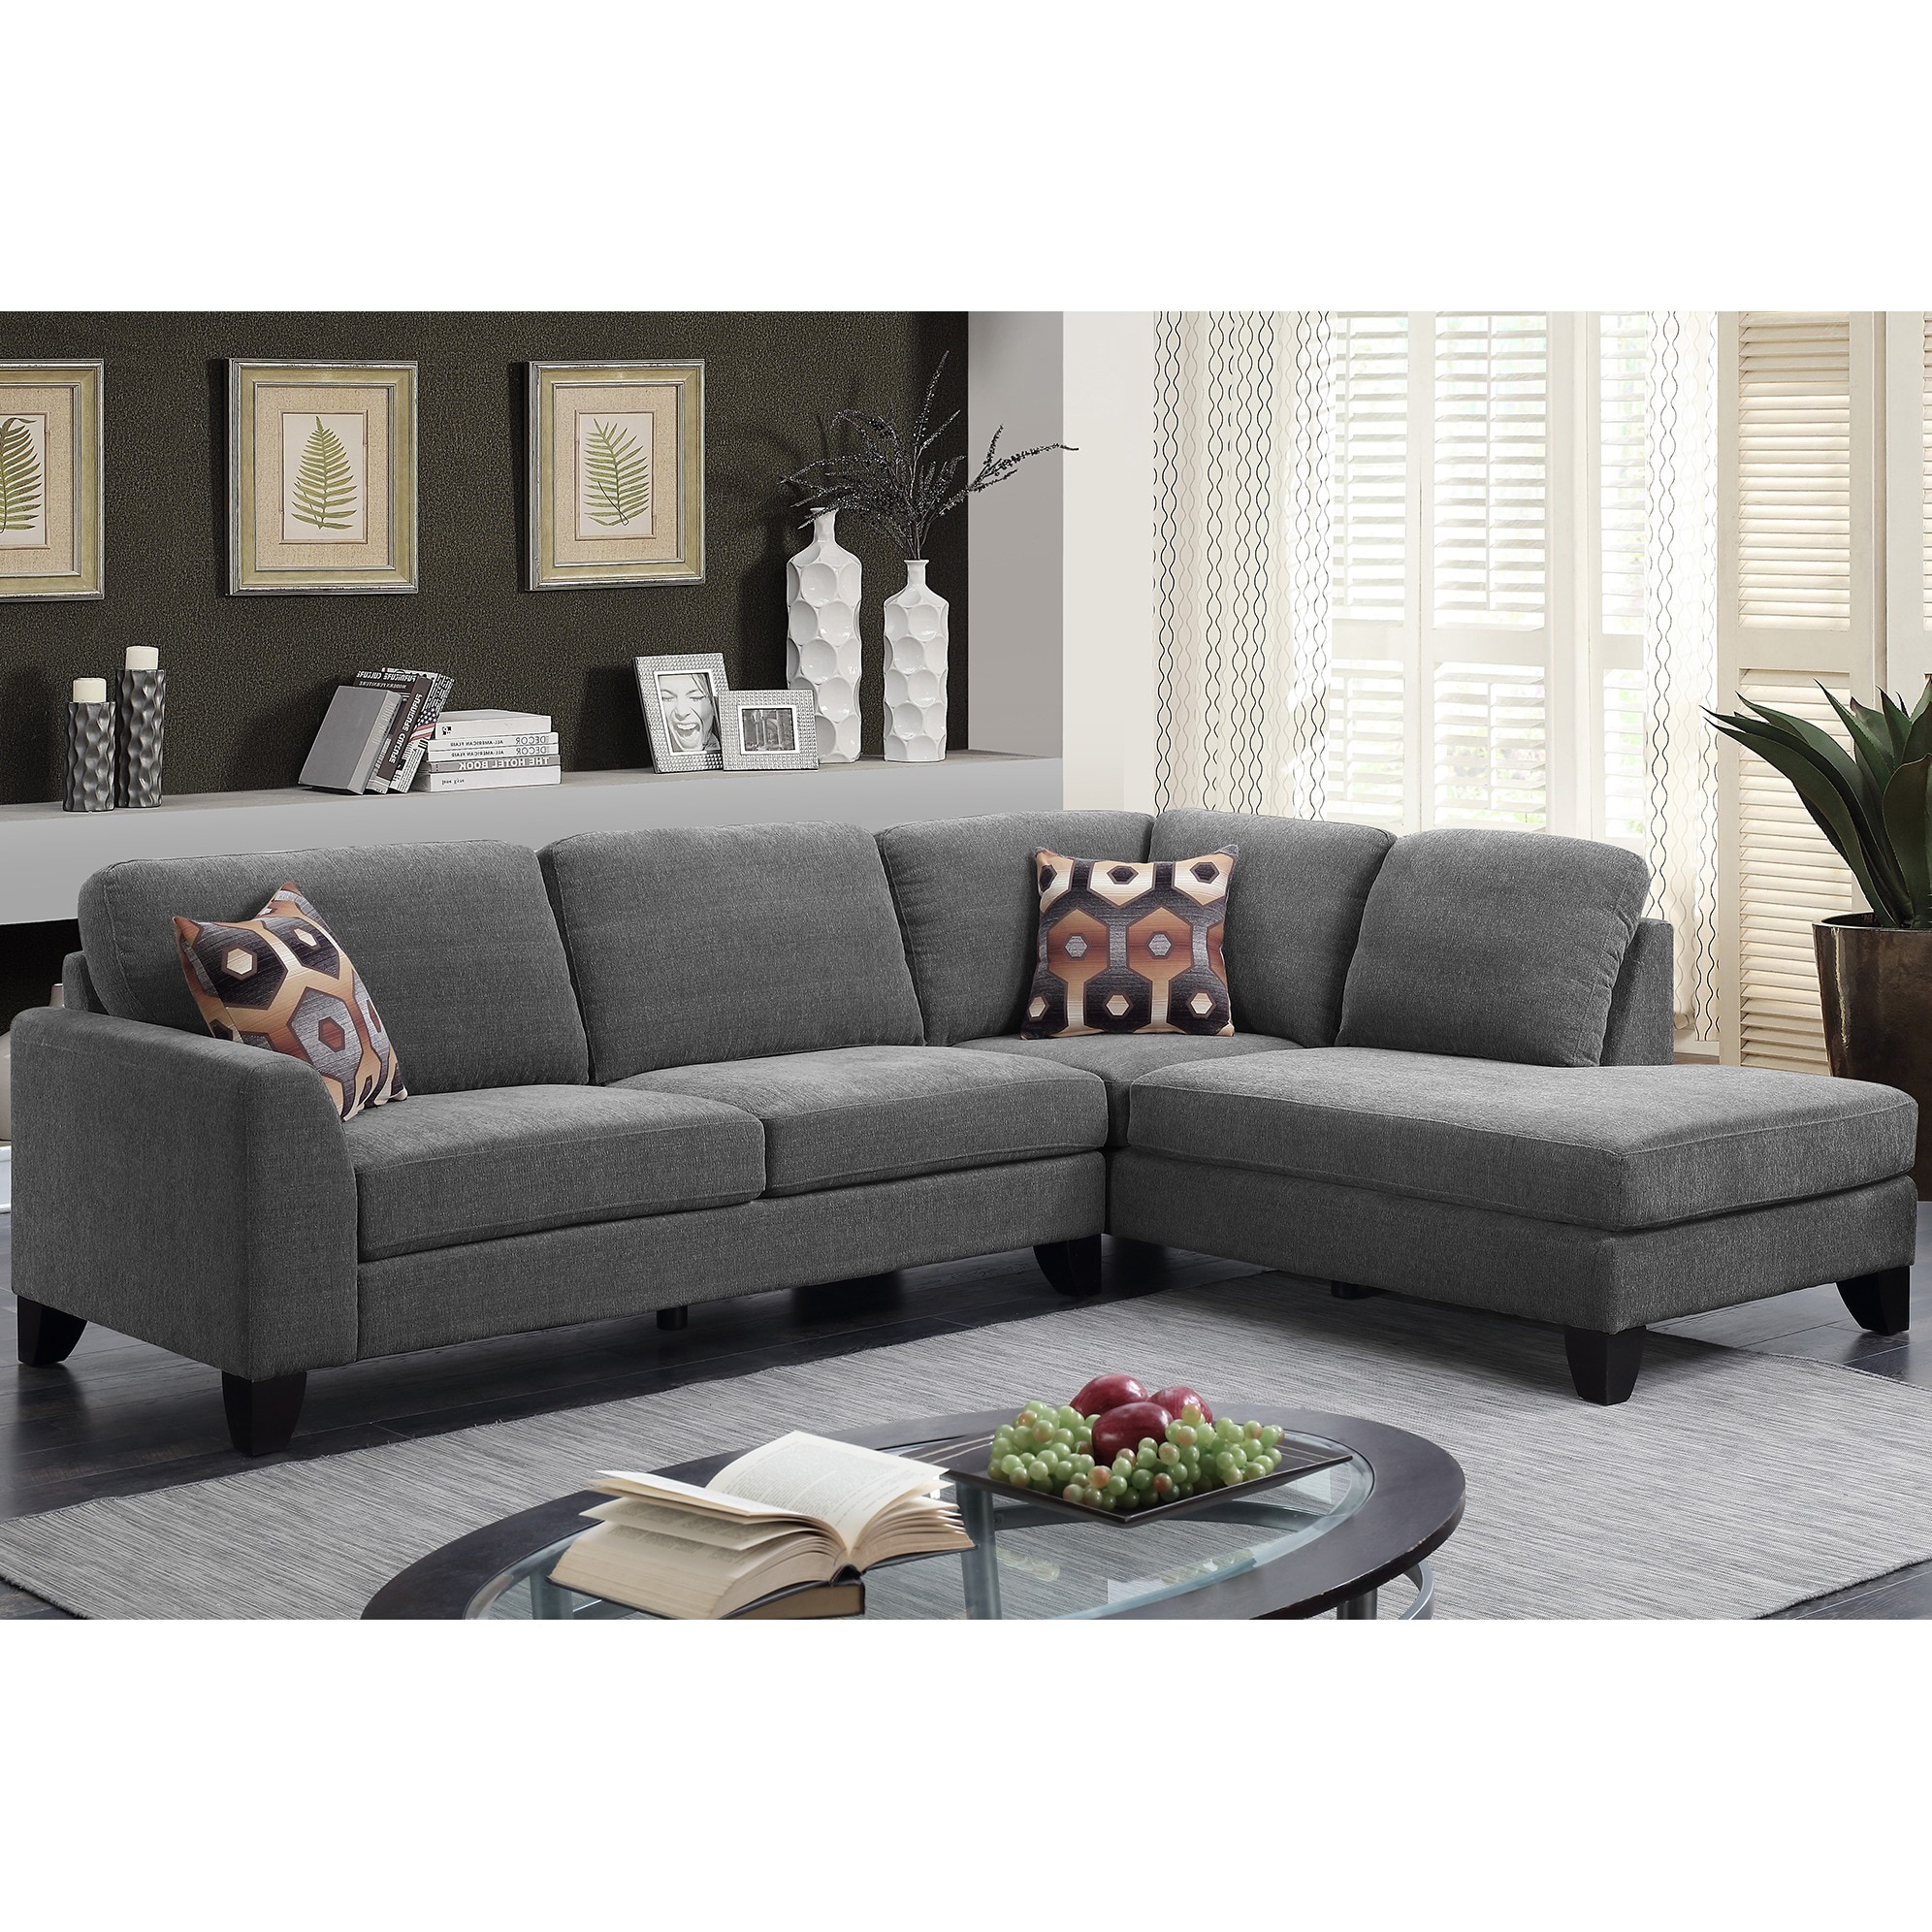 Porter Monza Grey Chenille Sectional Sofa with Optional G...